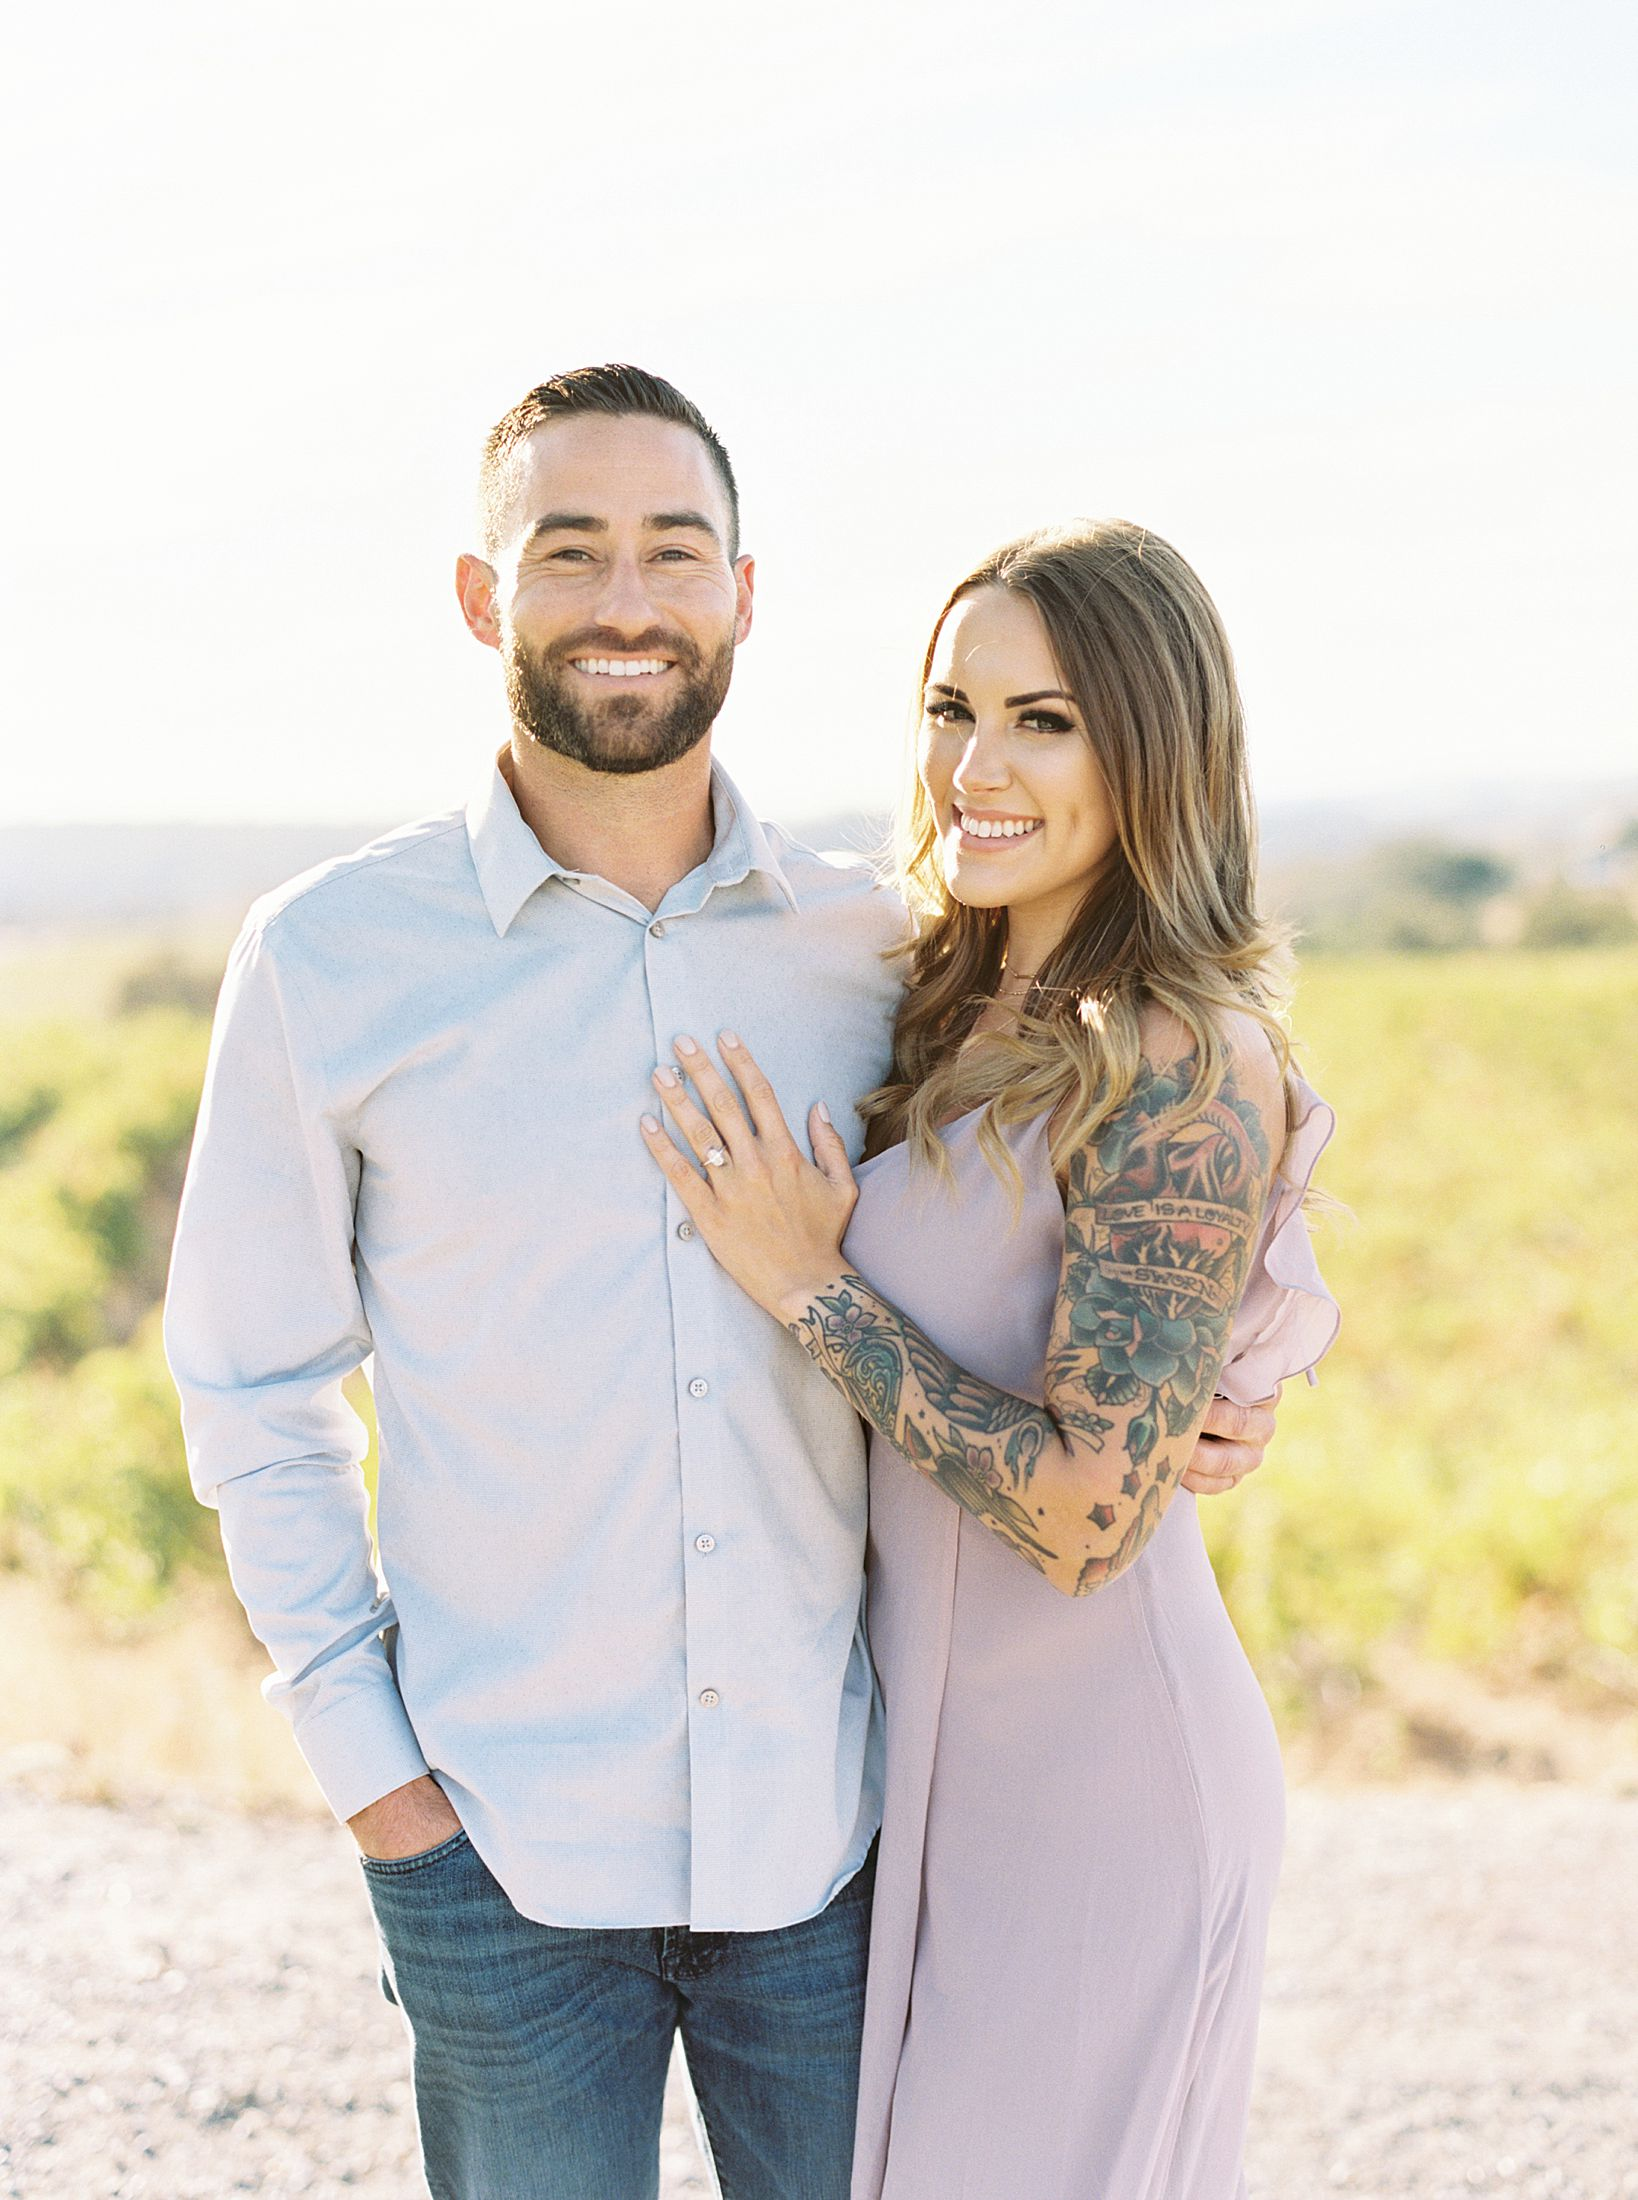 Helwig Winery Engagement Session - Steffanie and Rich - Jenn Robirds Events - Ashley Baumgartner - Sacramento Wedding Photographer - Private Estate Wedding Photographer - Helwig WInery Wedding_0094.jpg